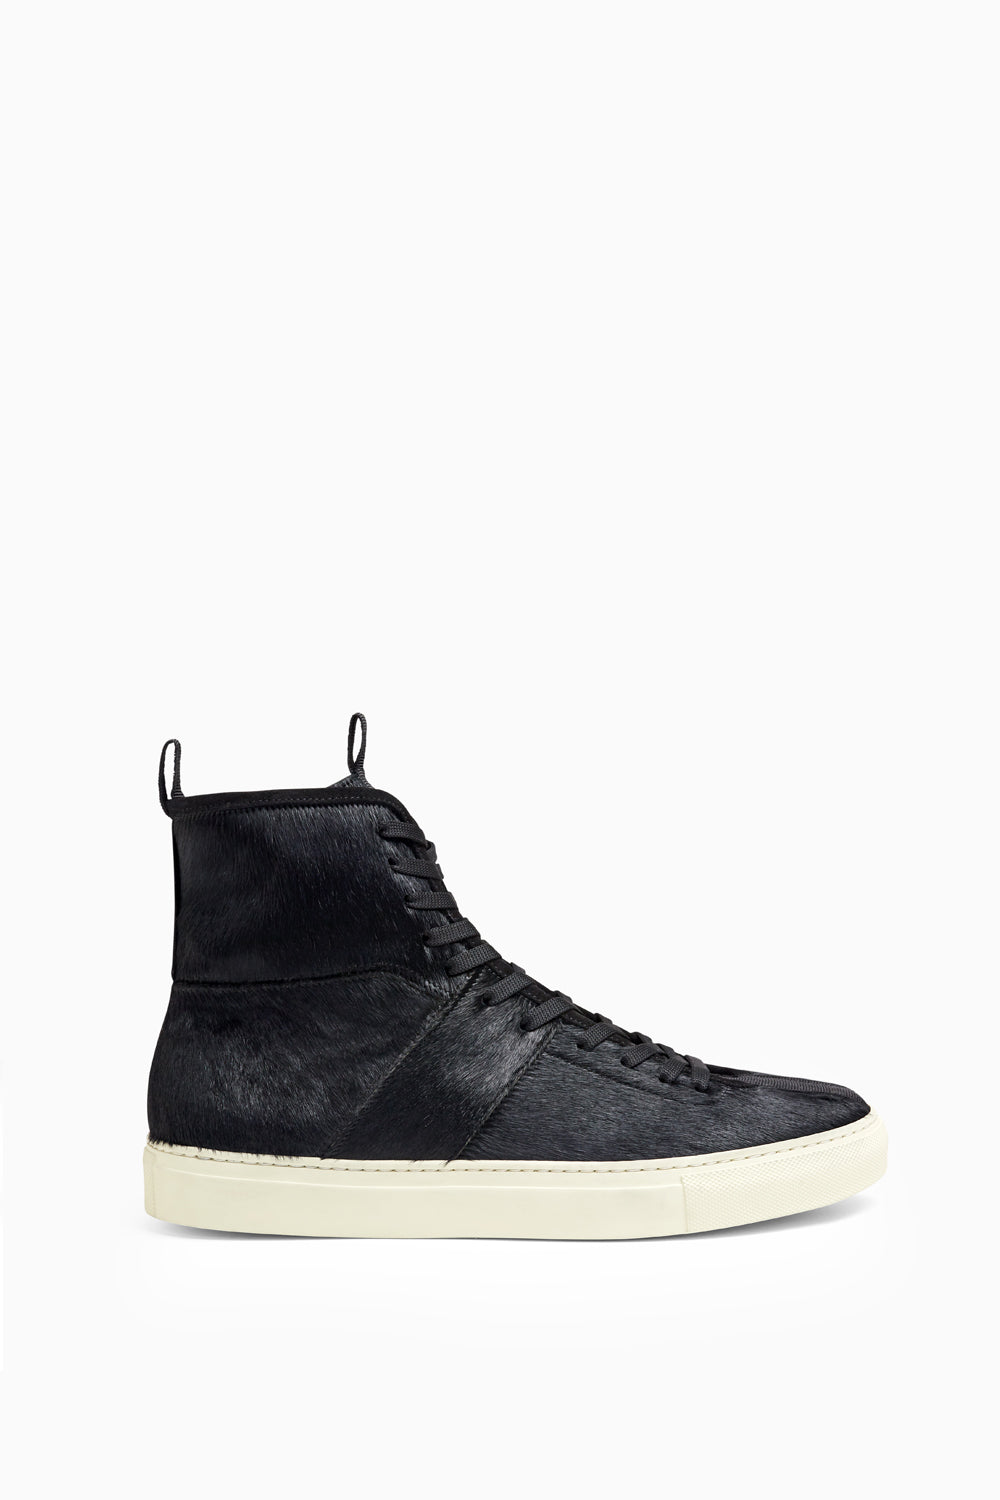 e4d14644ab6f9 high top roamer in black pony by daniel patrick ...